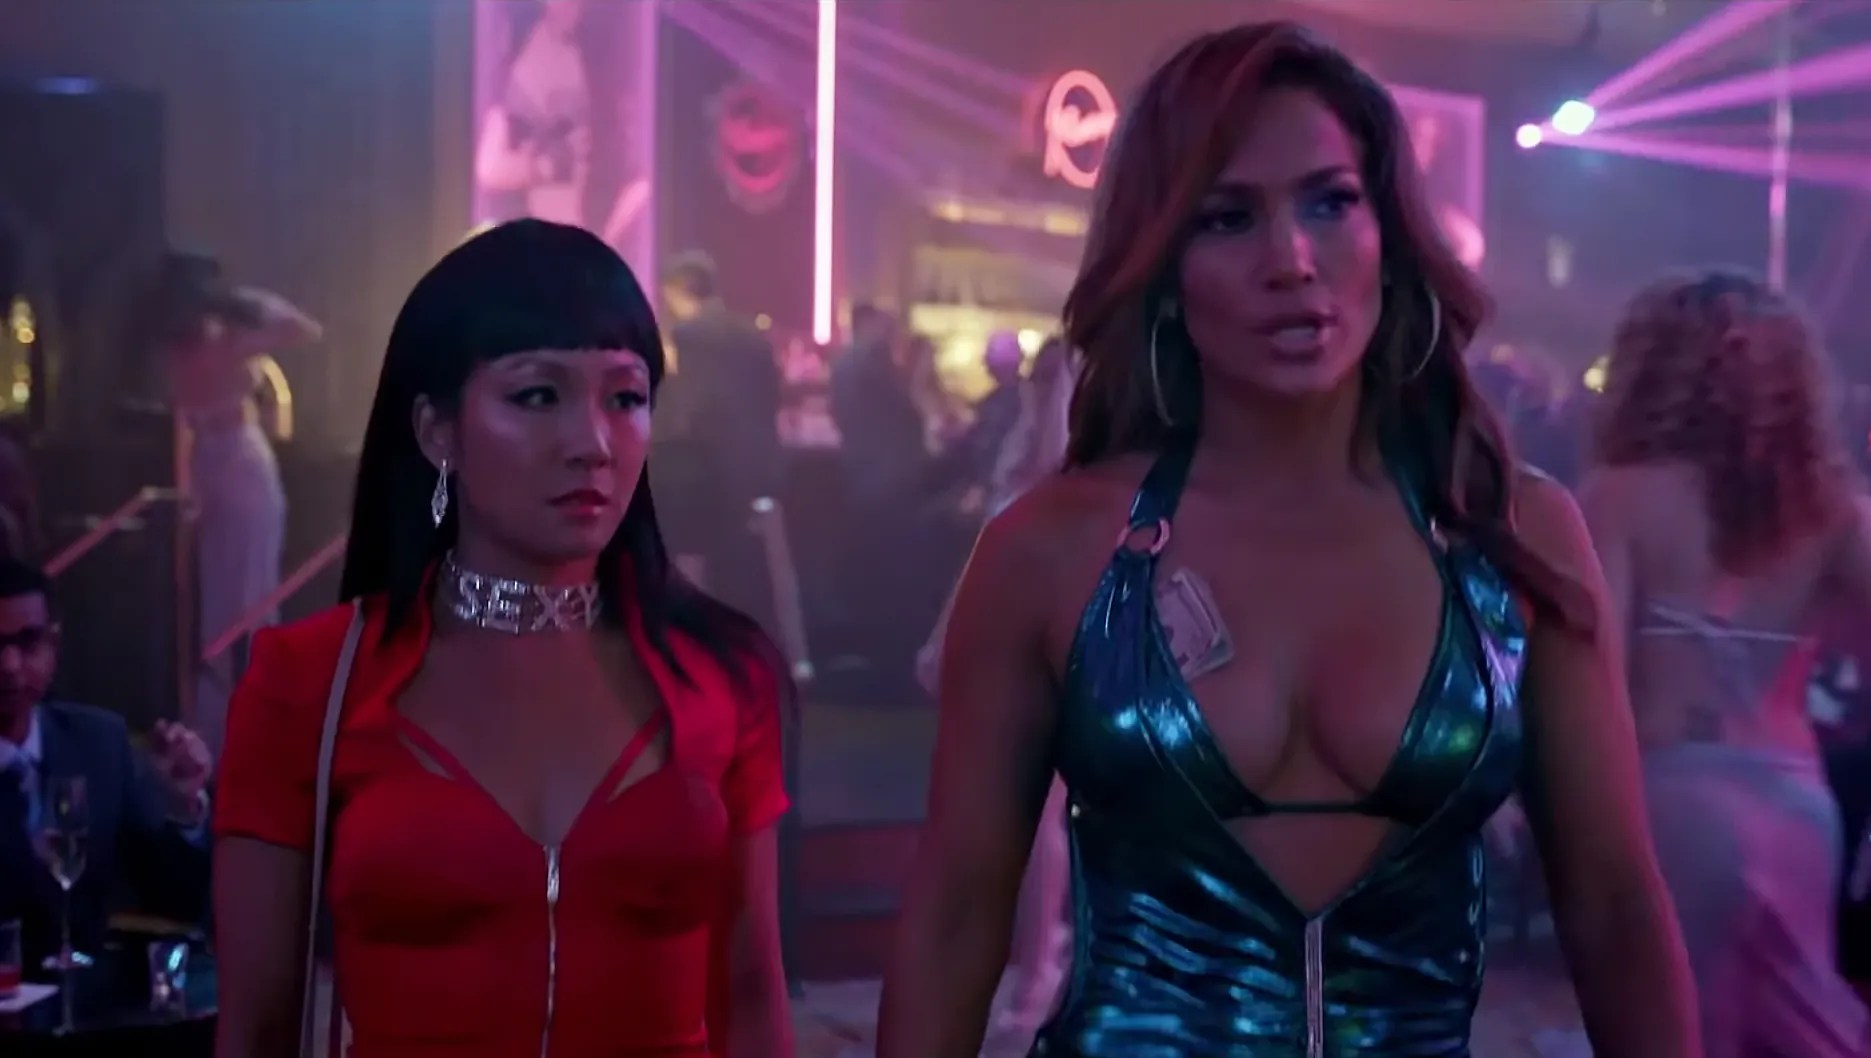 Jennifer Lopez film 'Hustlers' banned in Malaysia over